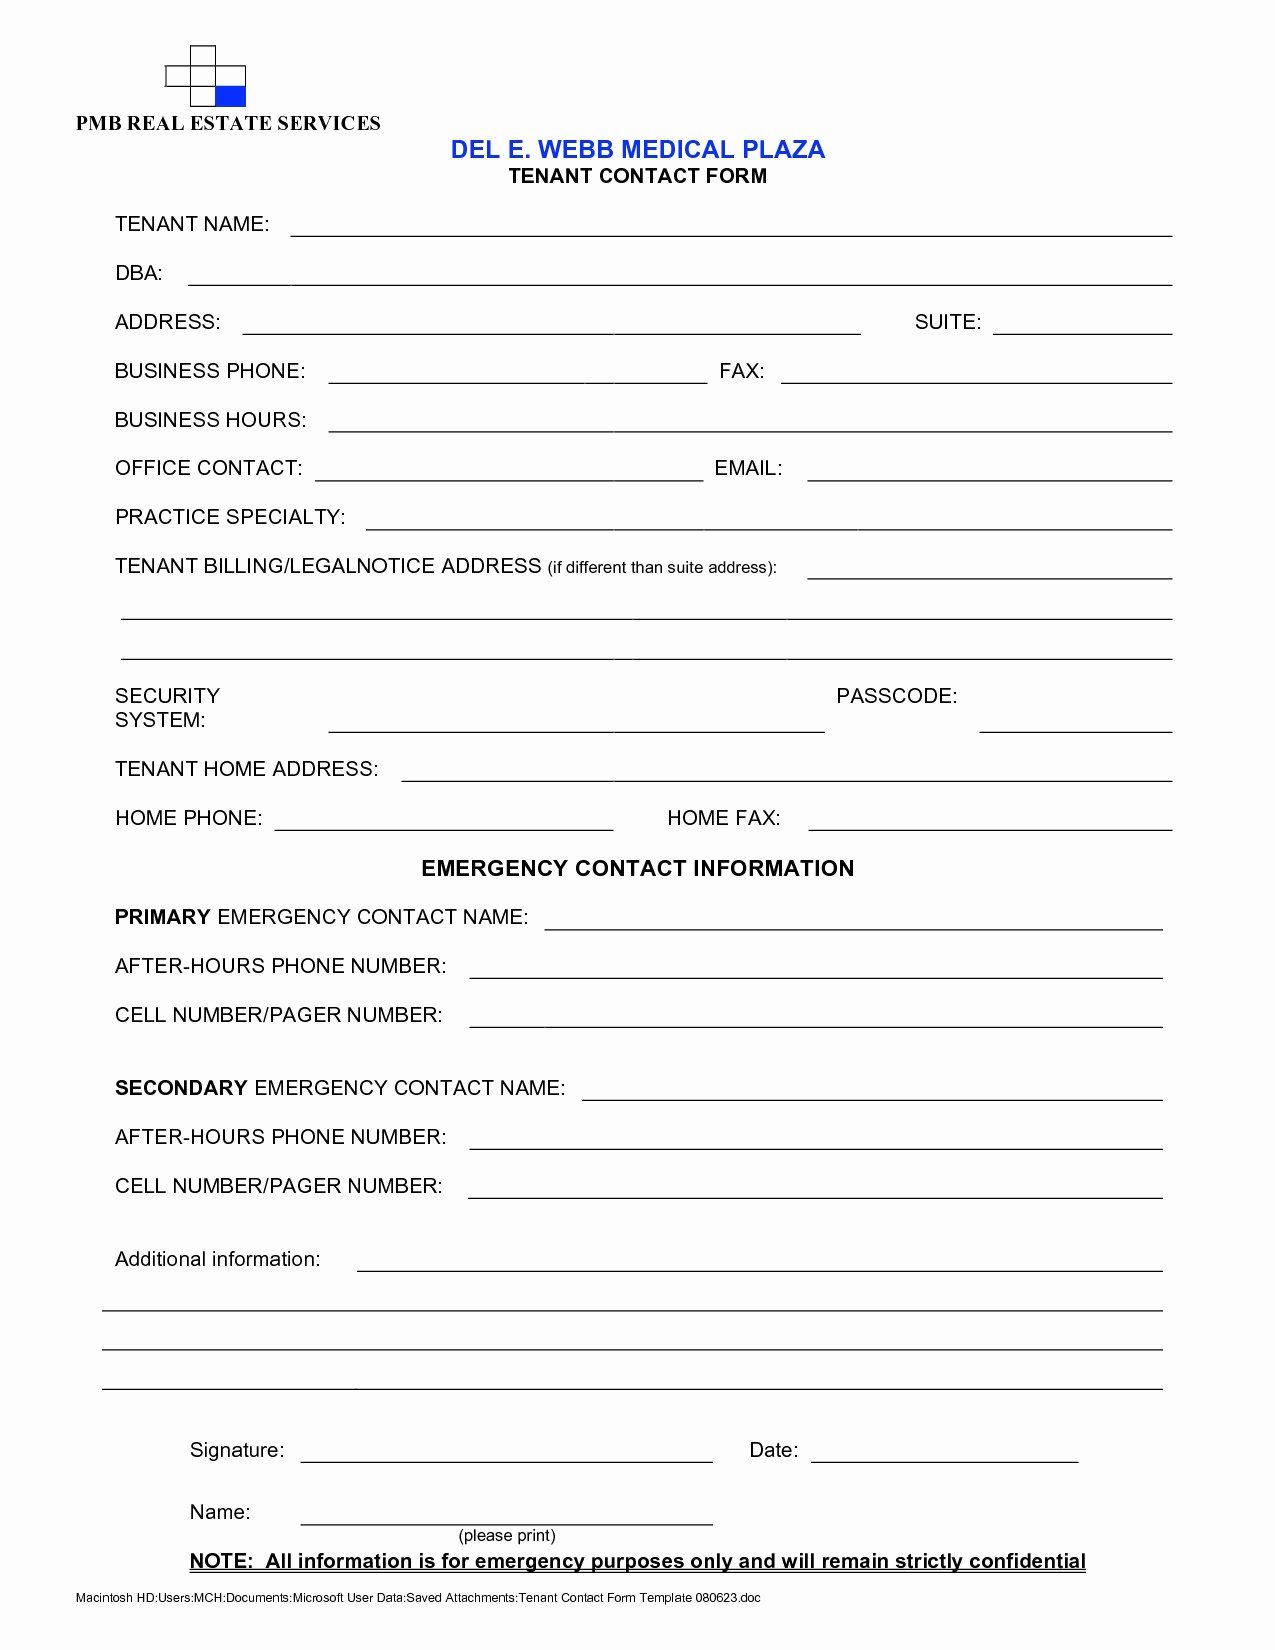 Tenant Information Sheet Template Fresh Update Your Contact Information Template